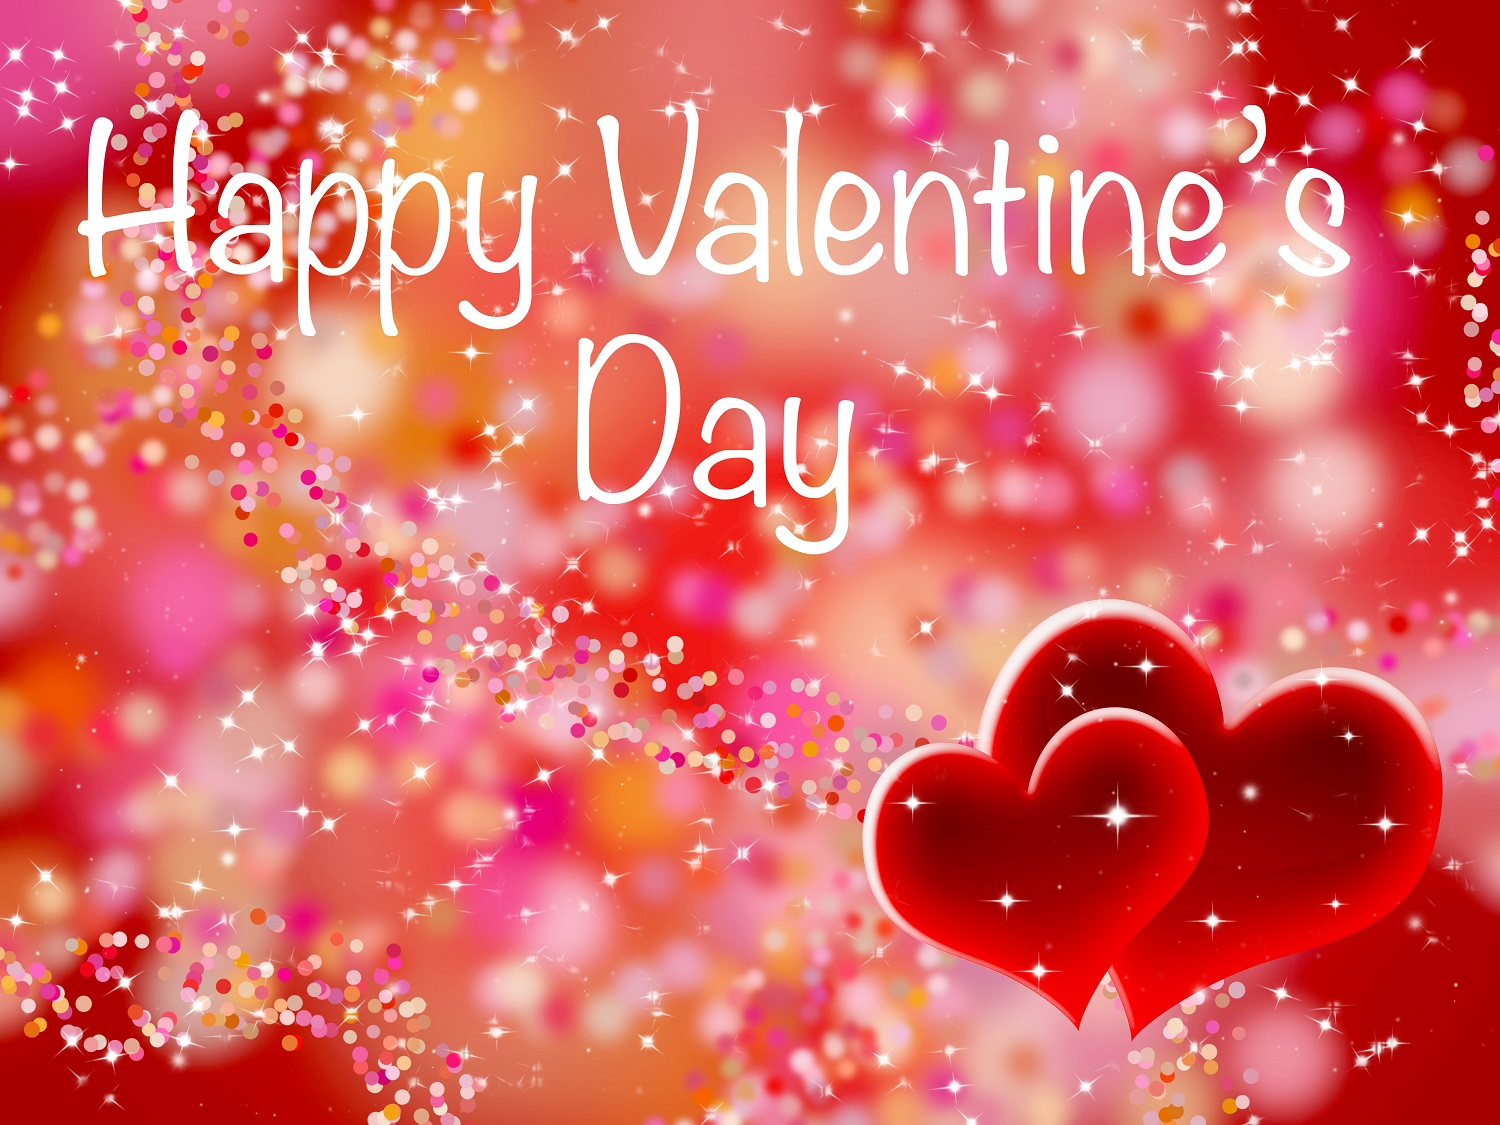 Happy Valentines Day Animated Gifs: